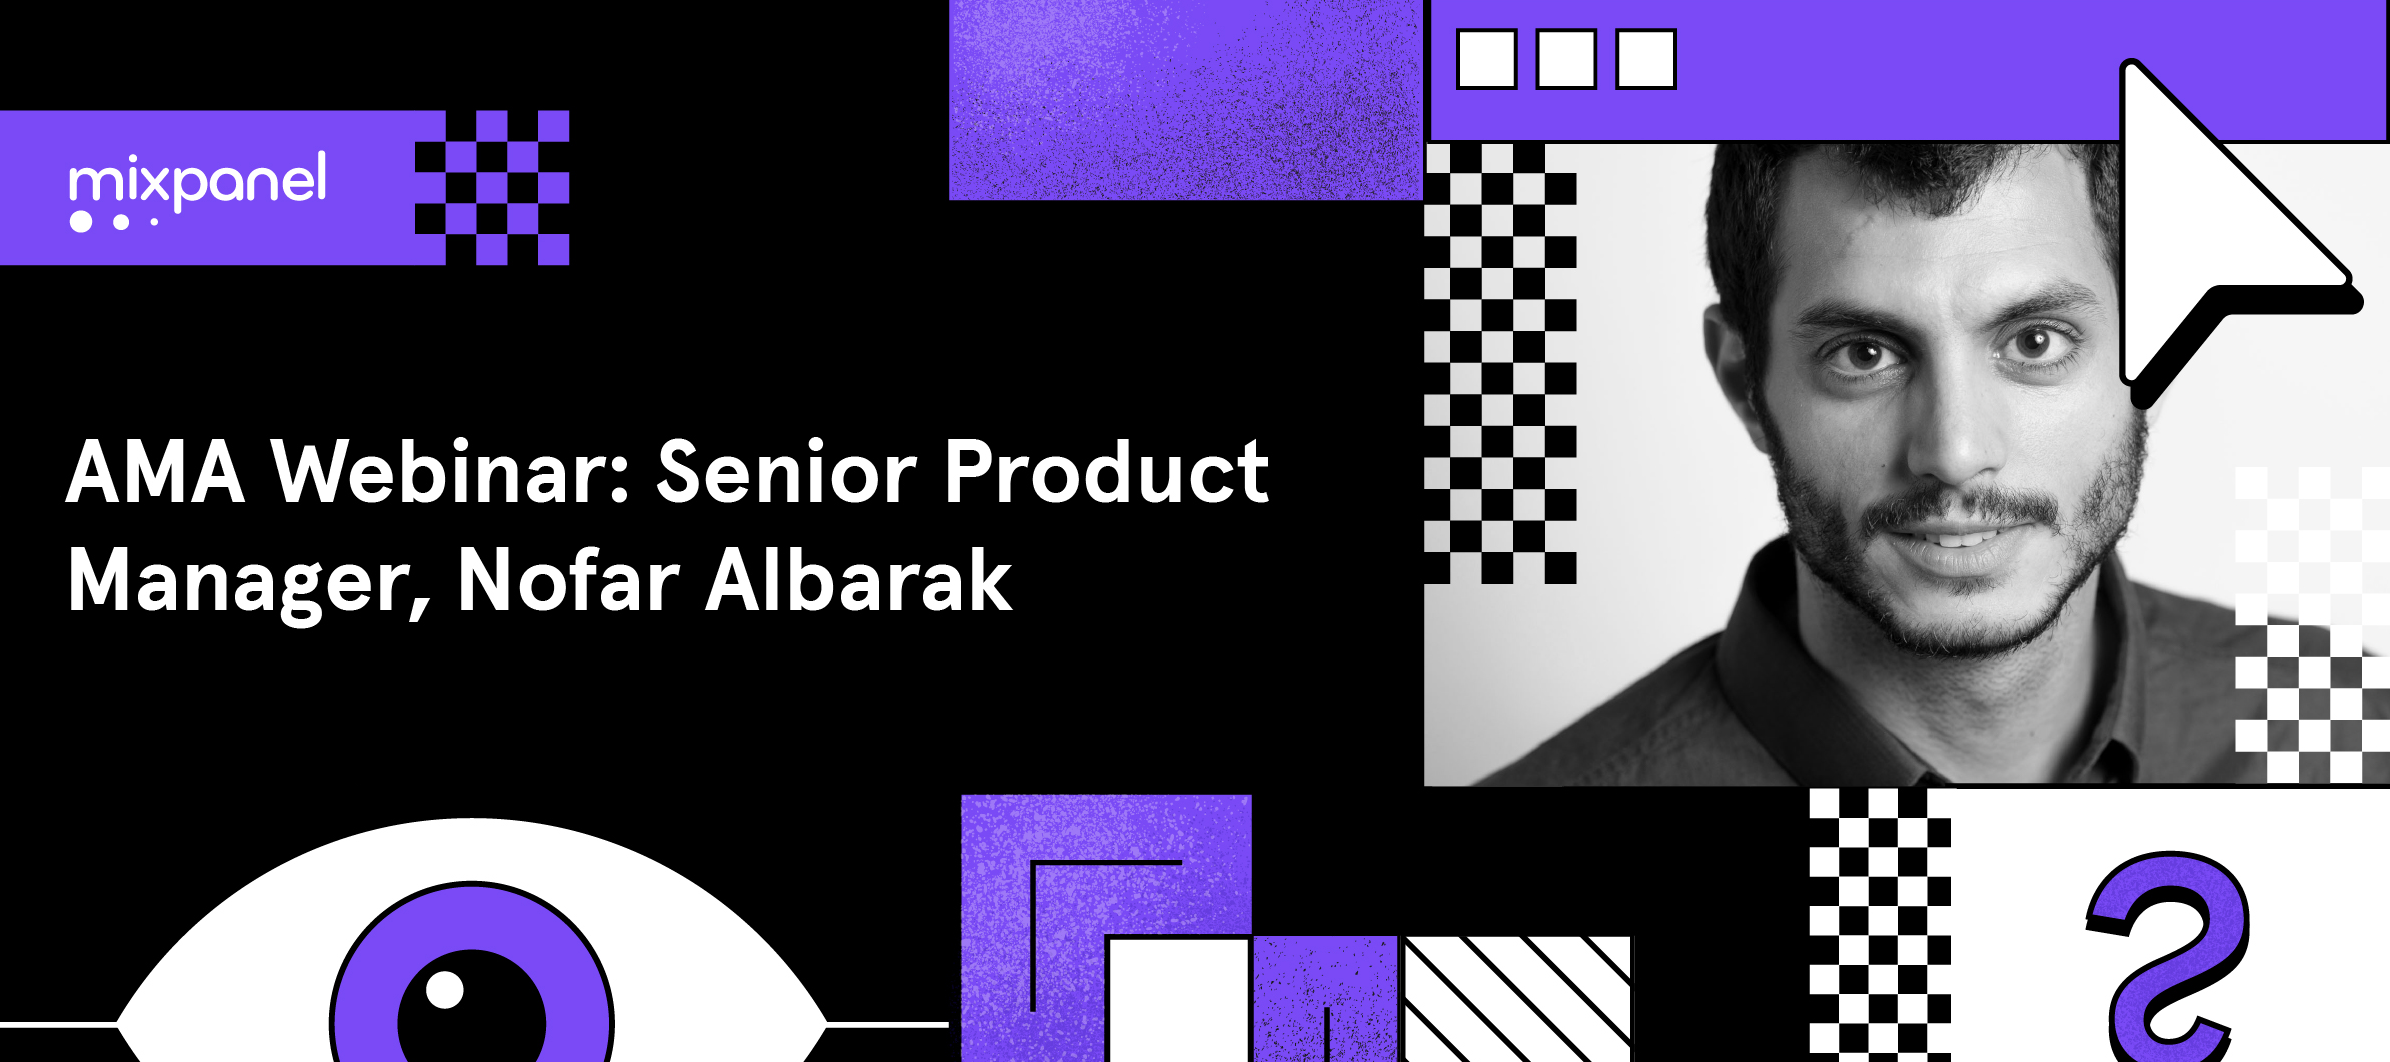 AMA with Nofar Albarak - Follow up questions answered!